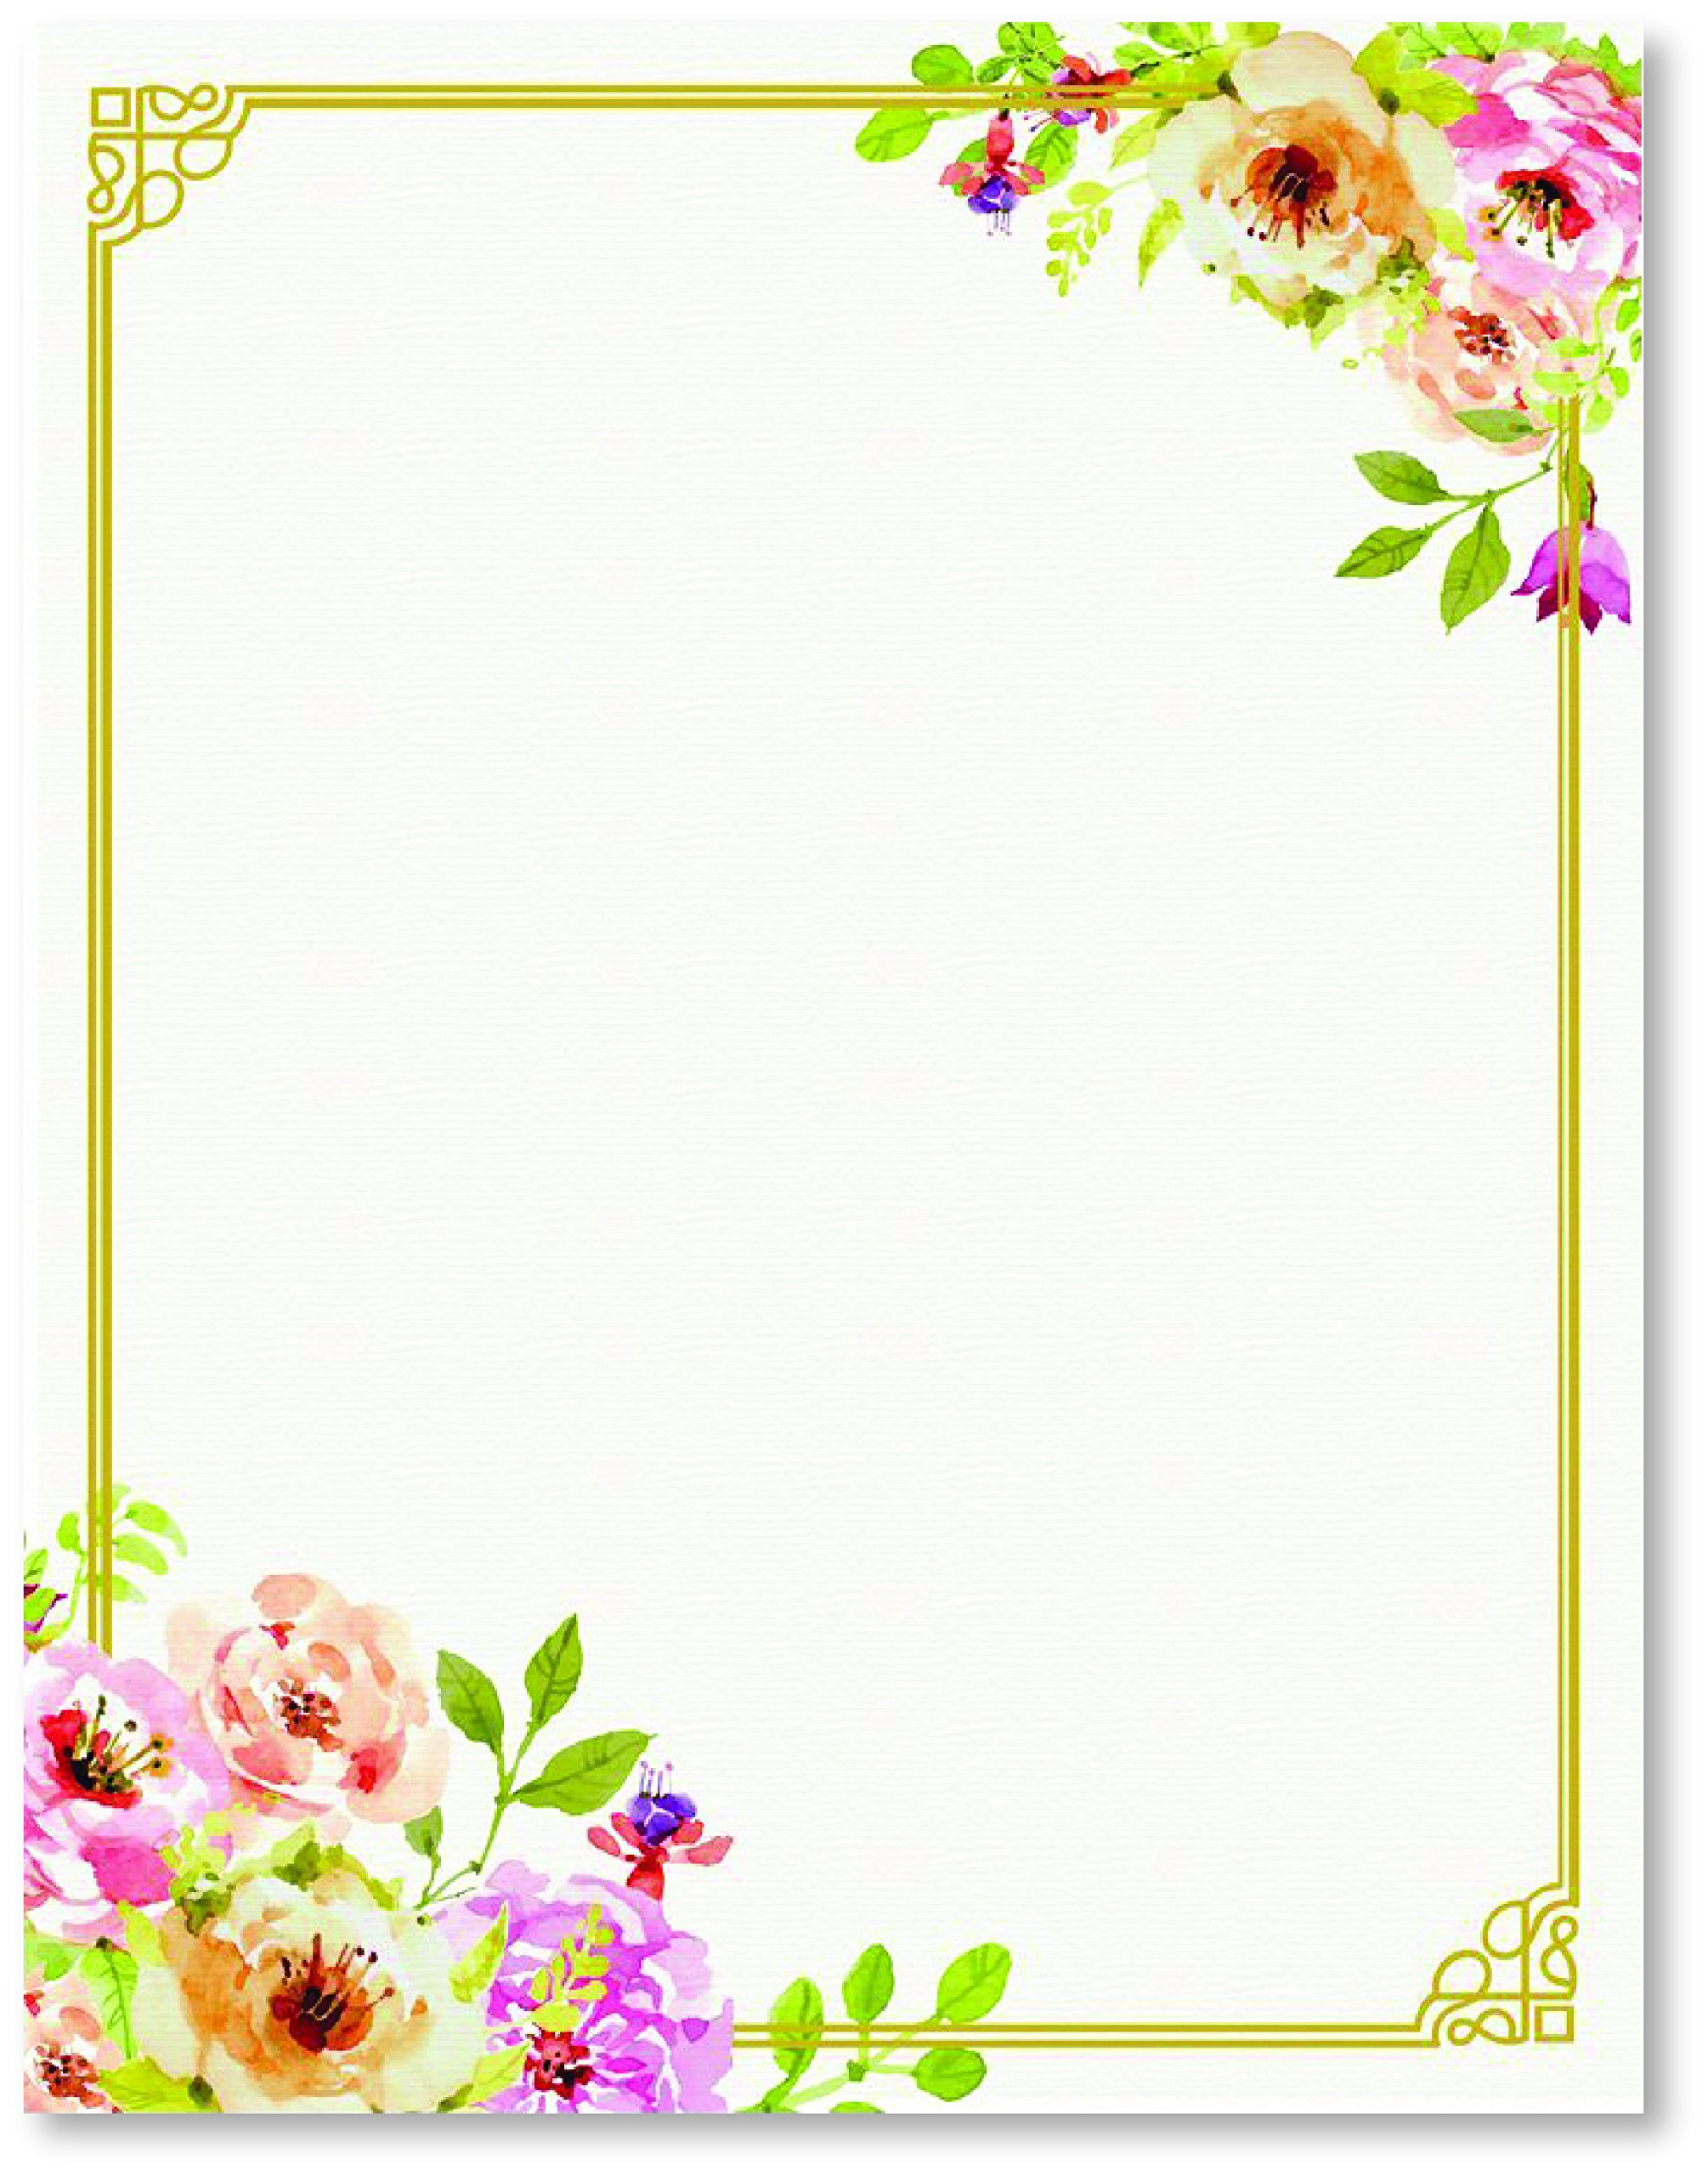 Stationery Writing Paper - Perfect Invitations for Bridal Showers, Birthdays, Weddings, Engagement Party, VIP and All Occasions - 100 Floral Letter Notes for DIY Invitation Kit - Pink and Peach Roses